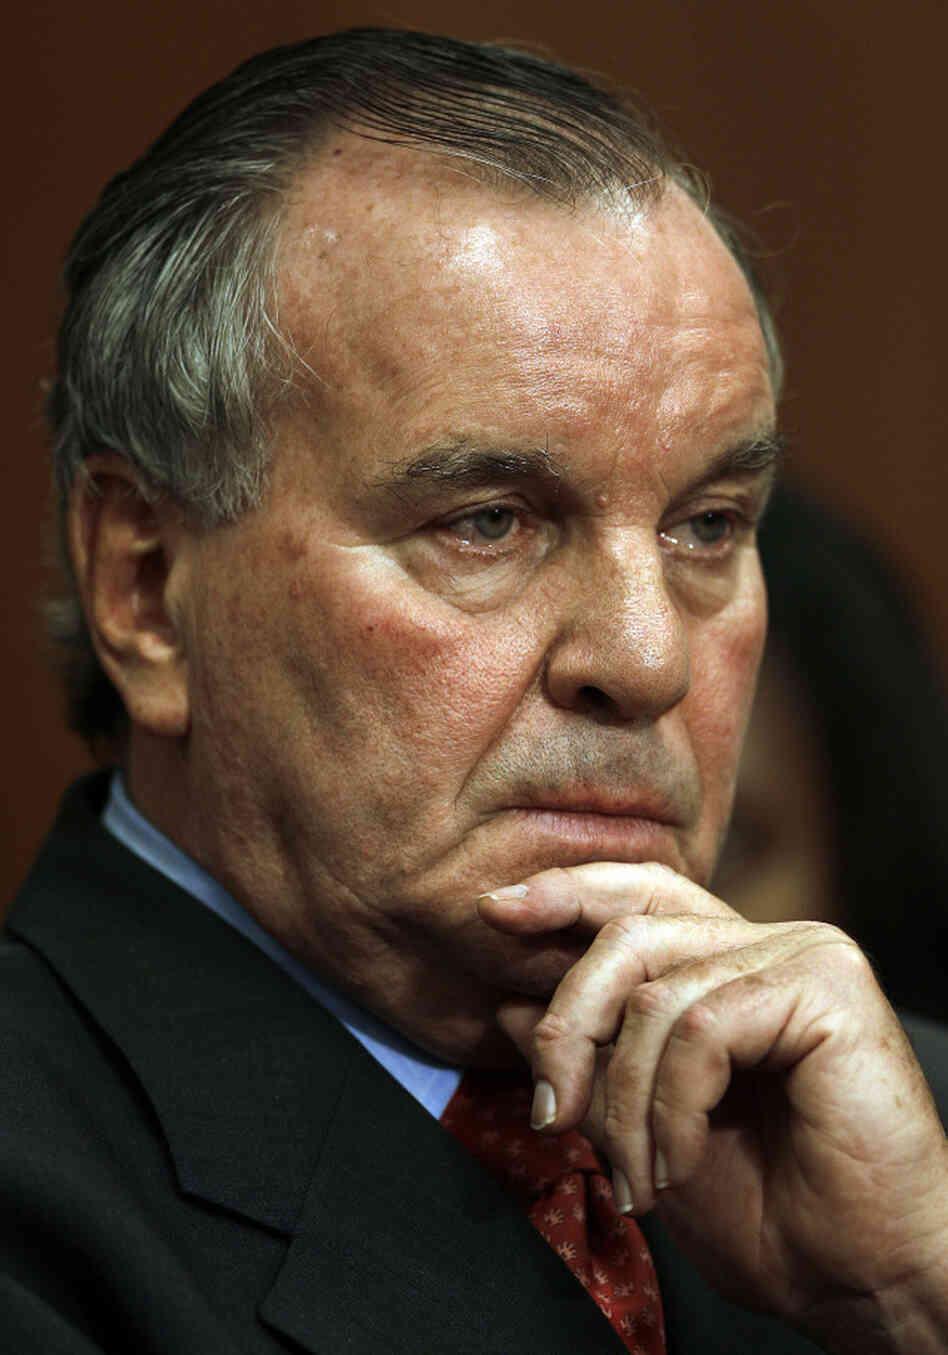 Richard Daley